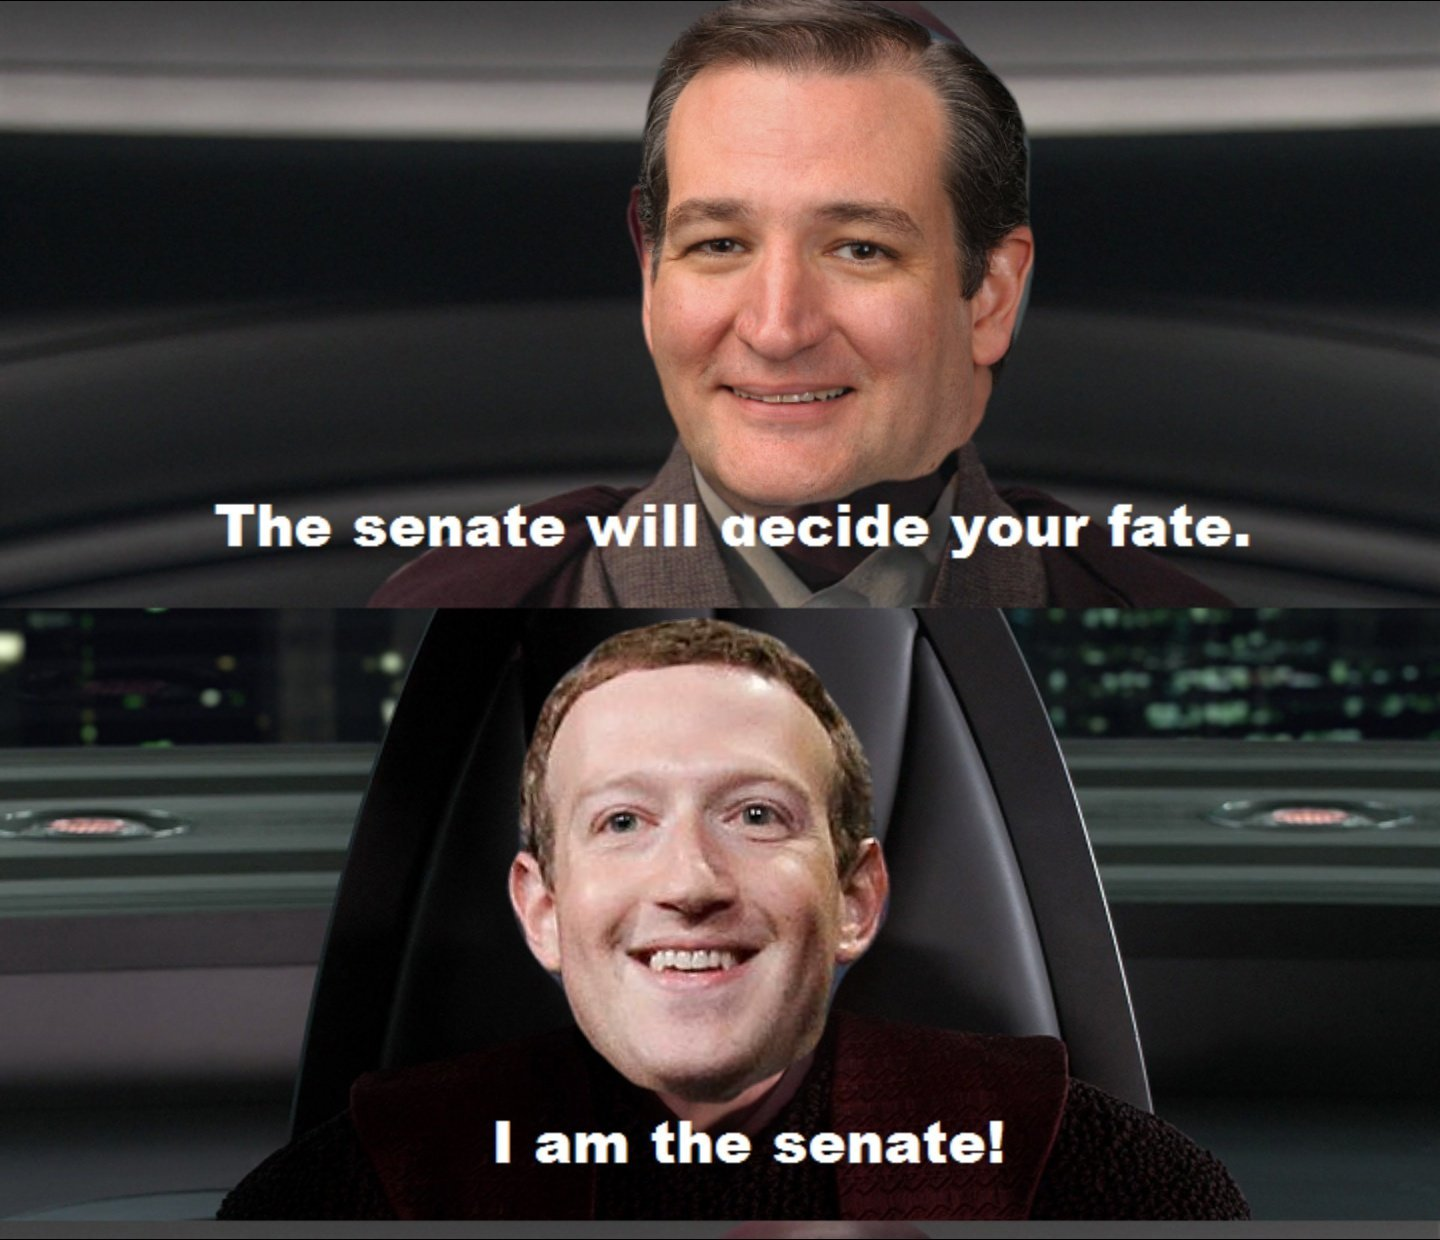 I am the Zucc - meme